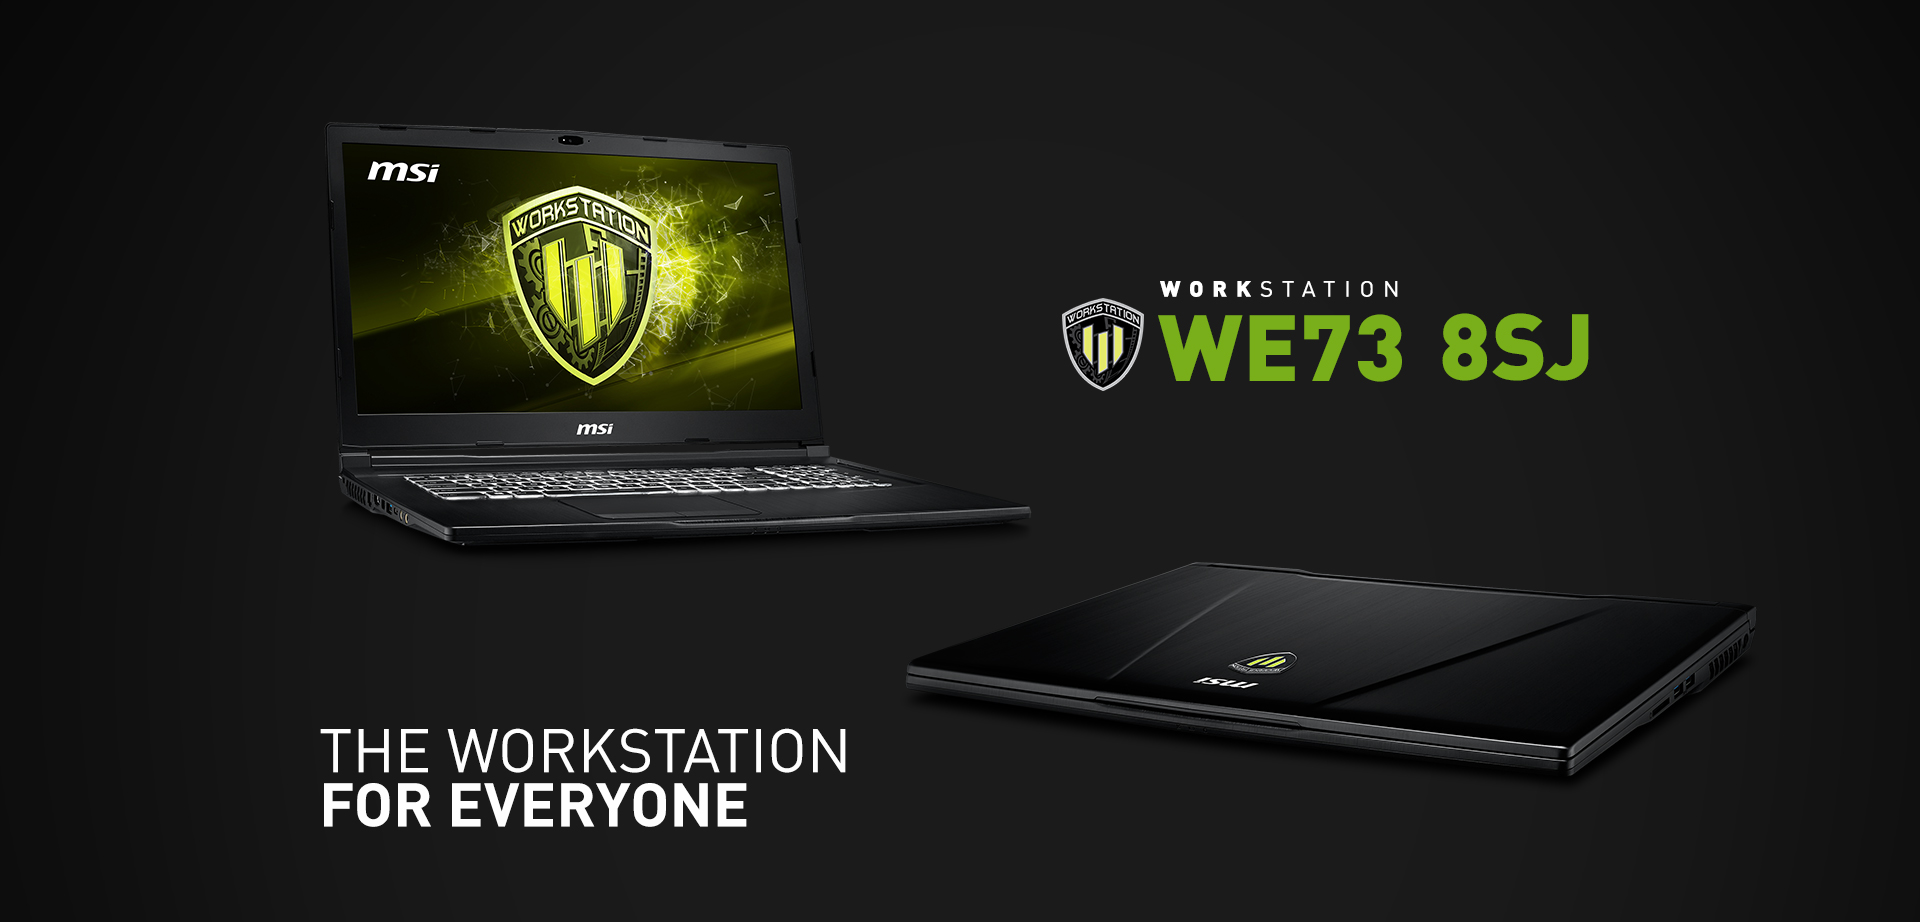 https://asset.msi.com/global/picture/image/feature/workstation/WE73/we73-8sj-overview.jpg